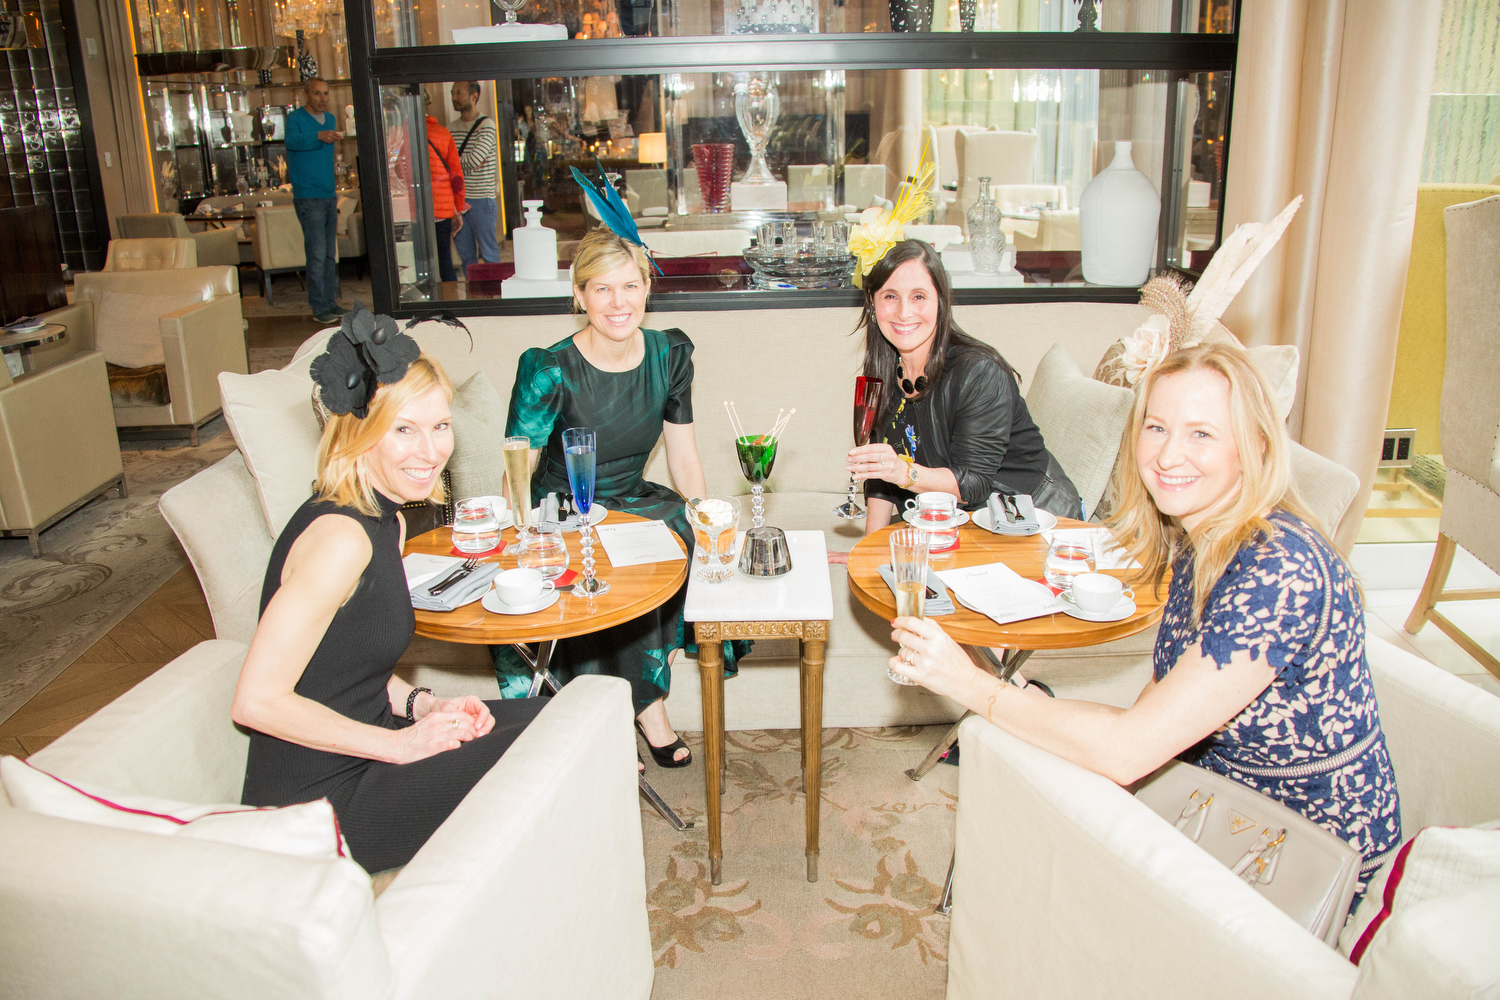 Joyous, gorgeous ladies enjoying the finest crystal wearing flattering Leah C. designs at the Baccarat Hotel, thank you all!